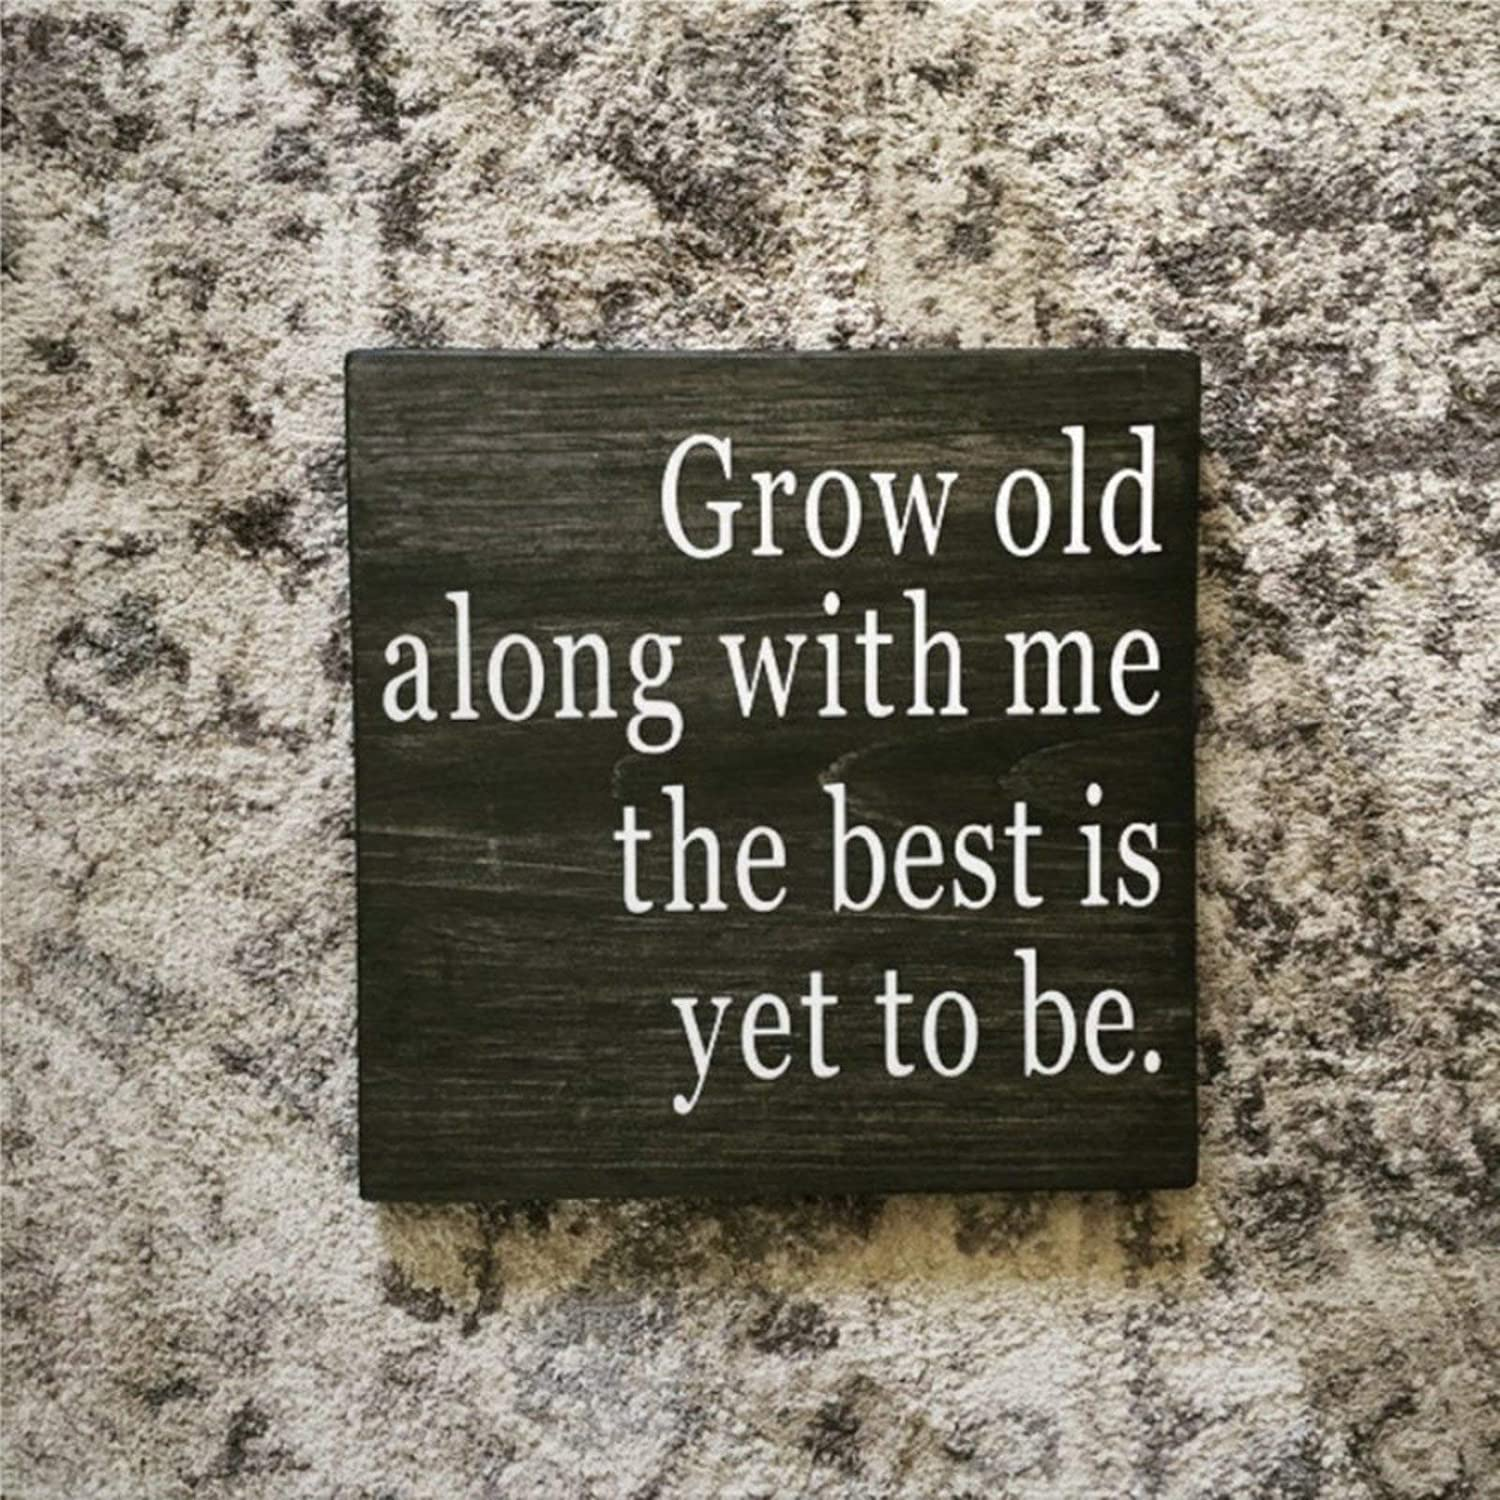 DONL9BAUER Grow Old Along with Me The Best is Yet to Be Wood Sign,Bedroom Wedding Rustic Style Wood Wall Decor Sign, Farmhouse Wooden Plaque Art for Home,Gardens, Porch, Gallery Wall, Coffee Shops.